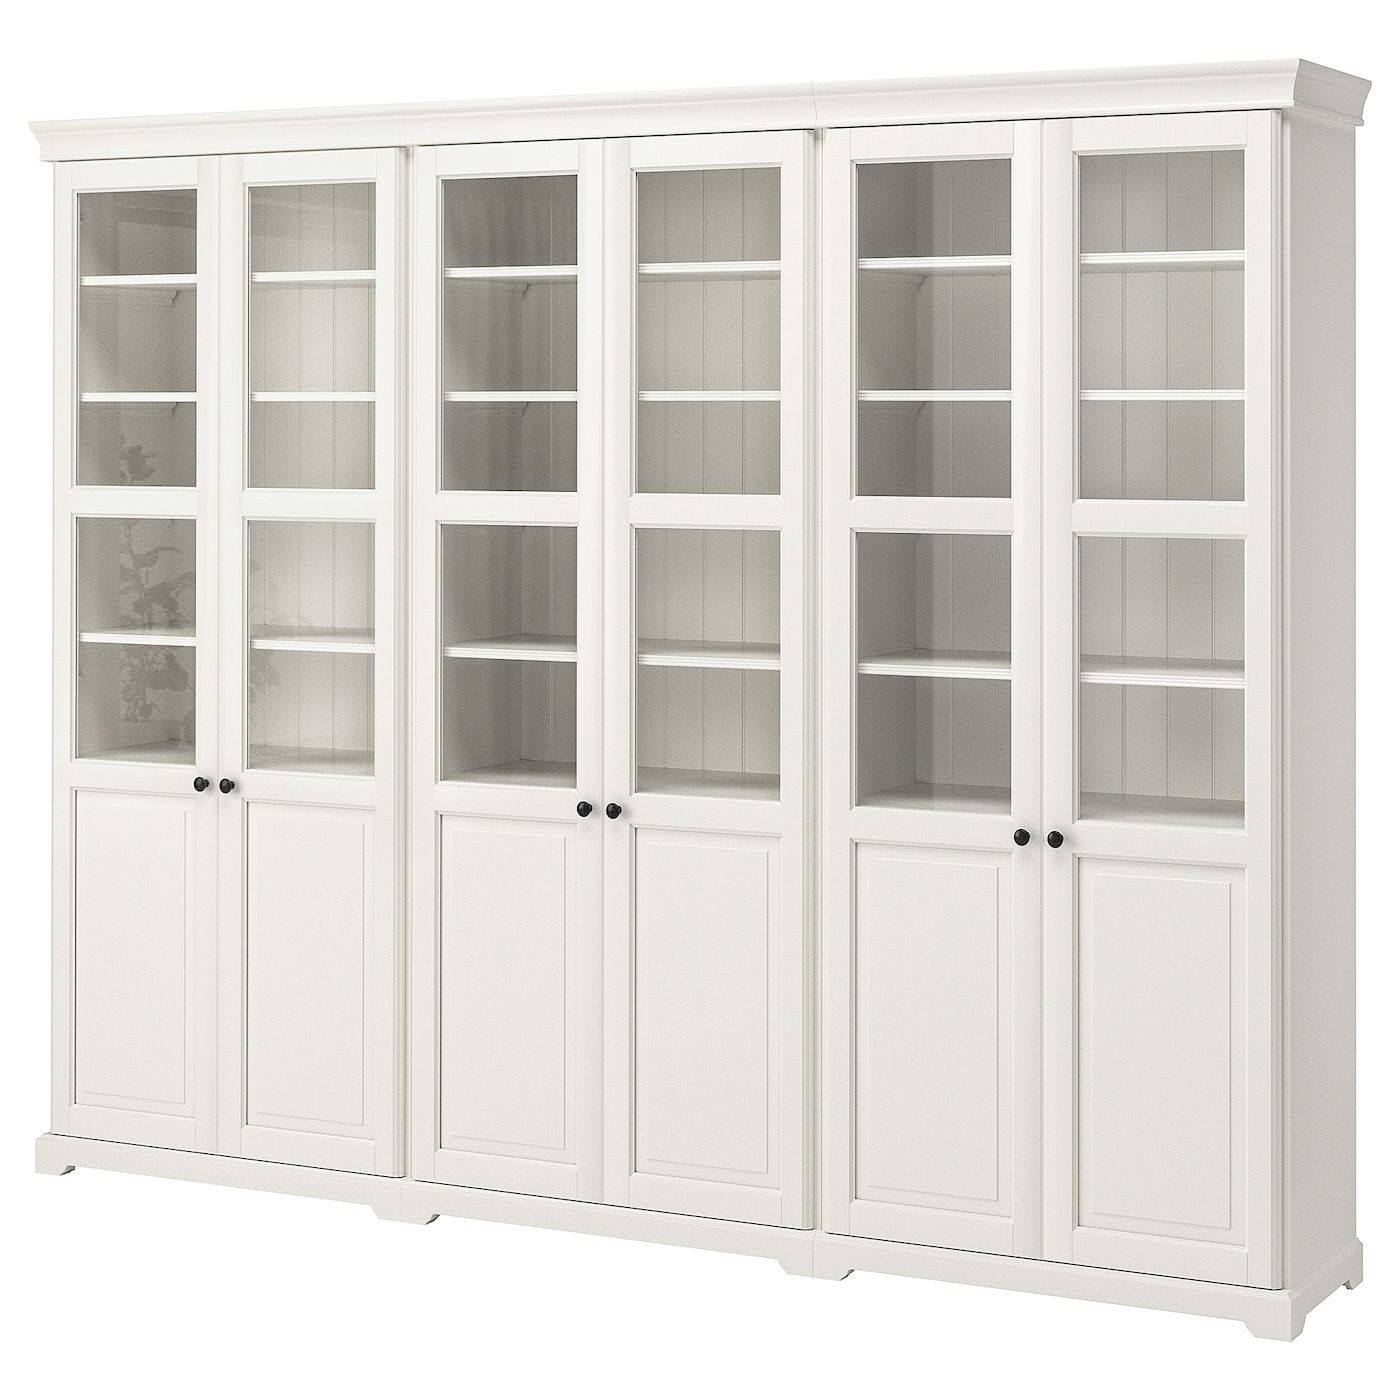 liatorp storage combination with doors white new home ikea rh pinterest com